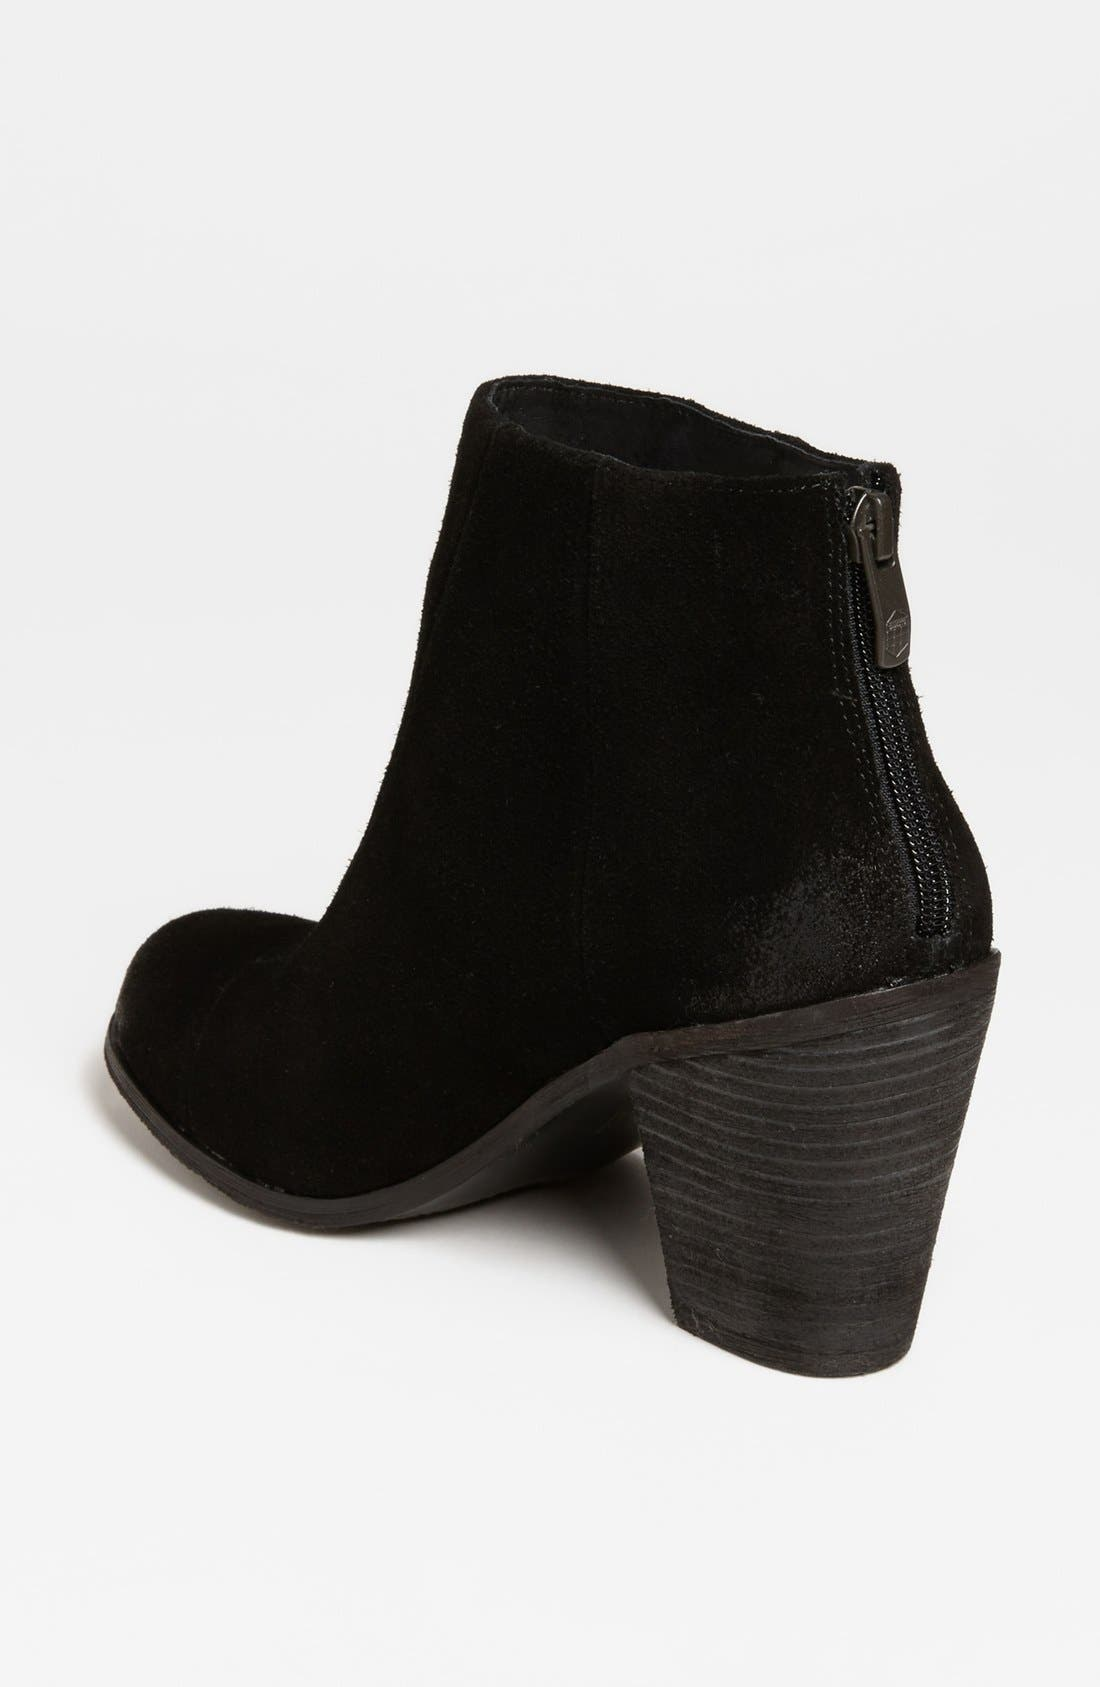 VINCE CAMUTO,                             'Grayson' Bootie,                             Alternate thumbnail 3, color,                             001